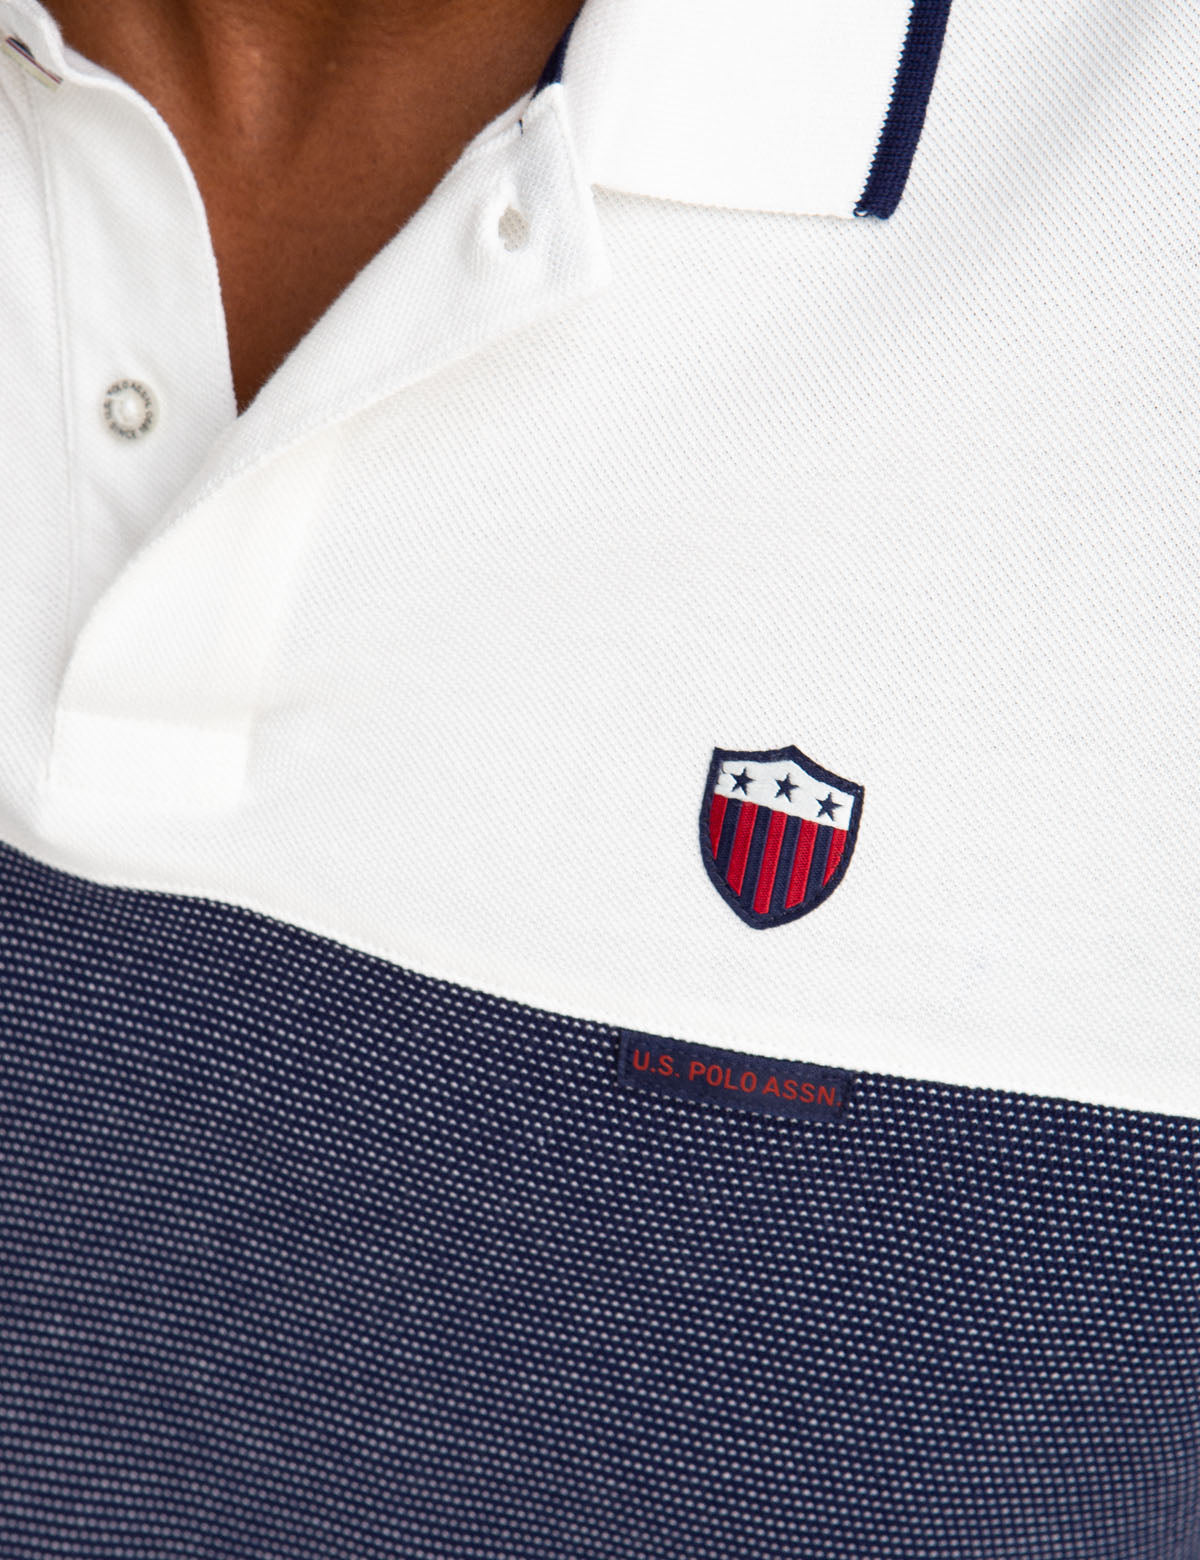 CREST TEXTURE STRIPED POLO SHIRT - U.S. Polo Assn.